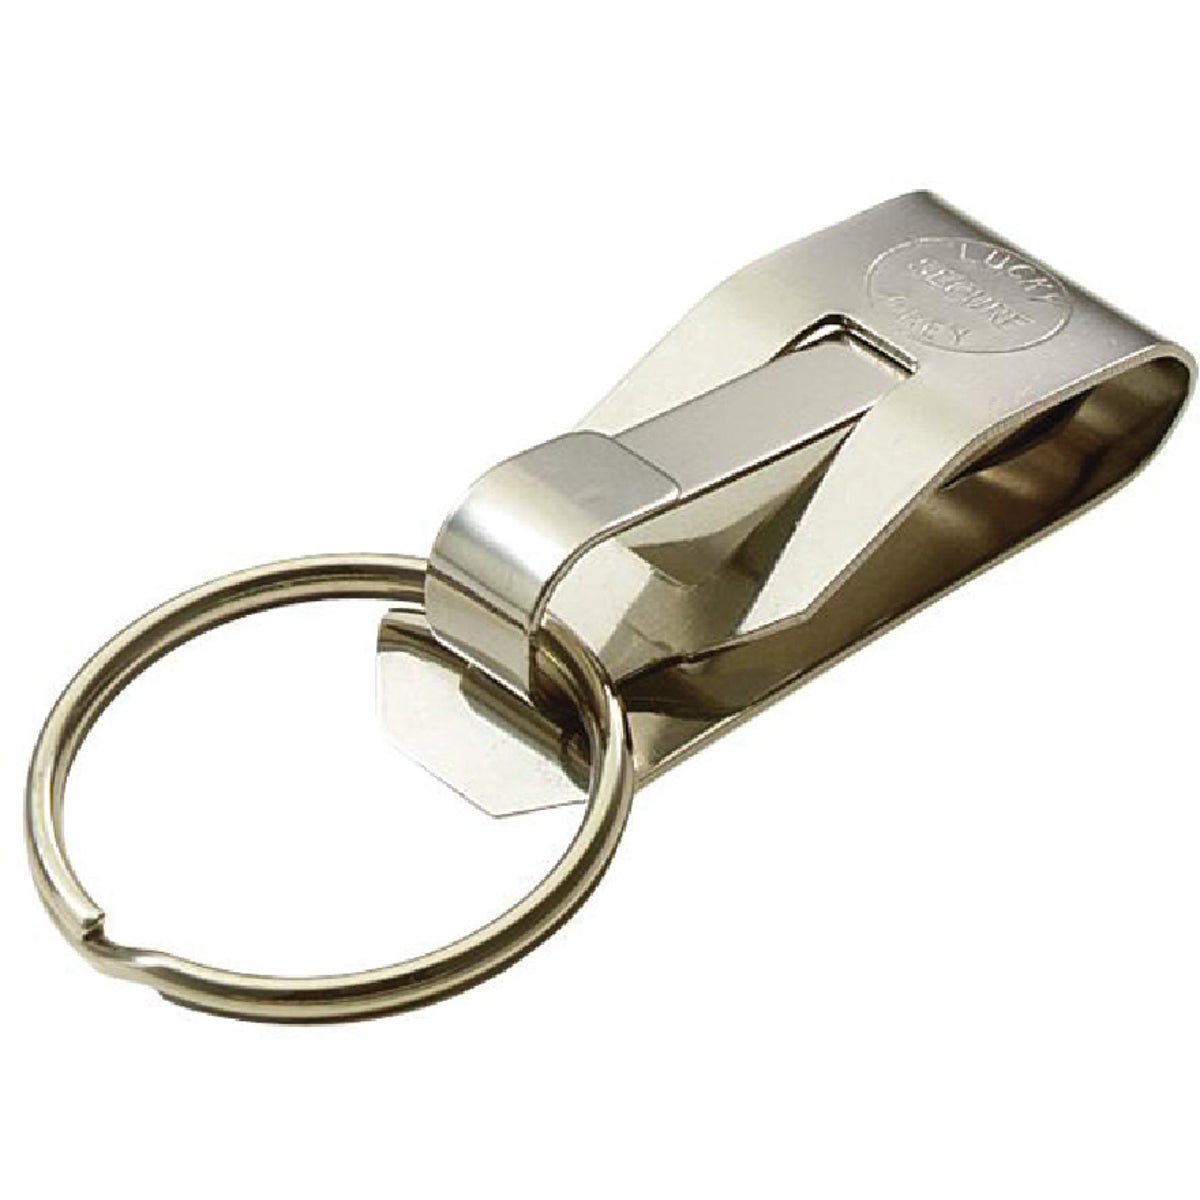 SECURE-A-KEY CLIP - 40401 by Lucky Line Prod Inc